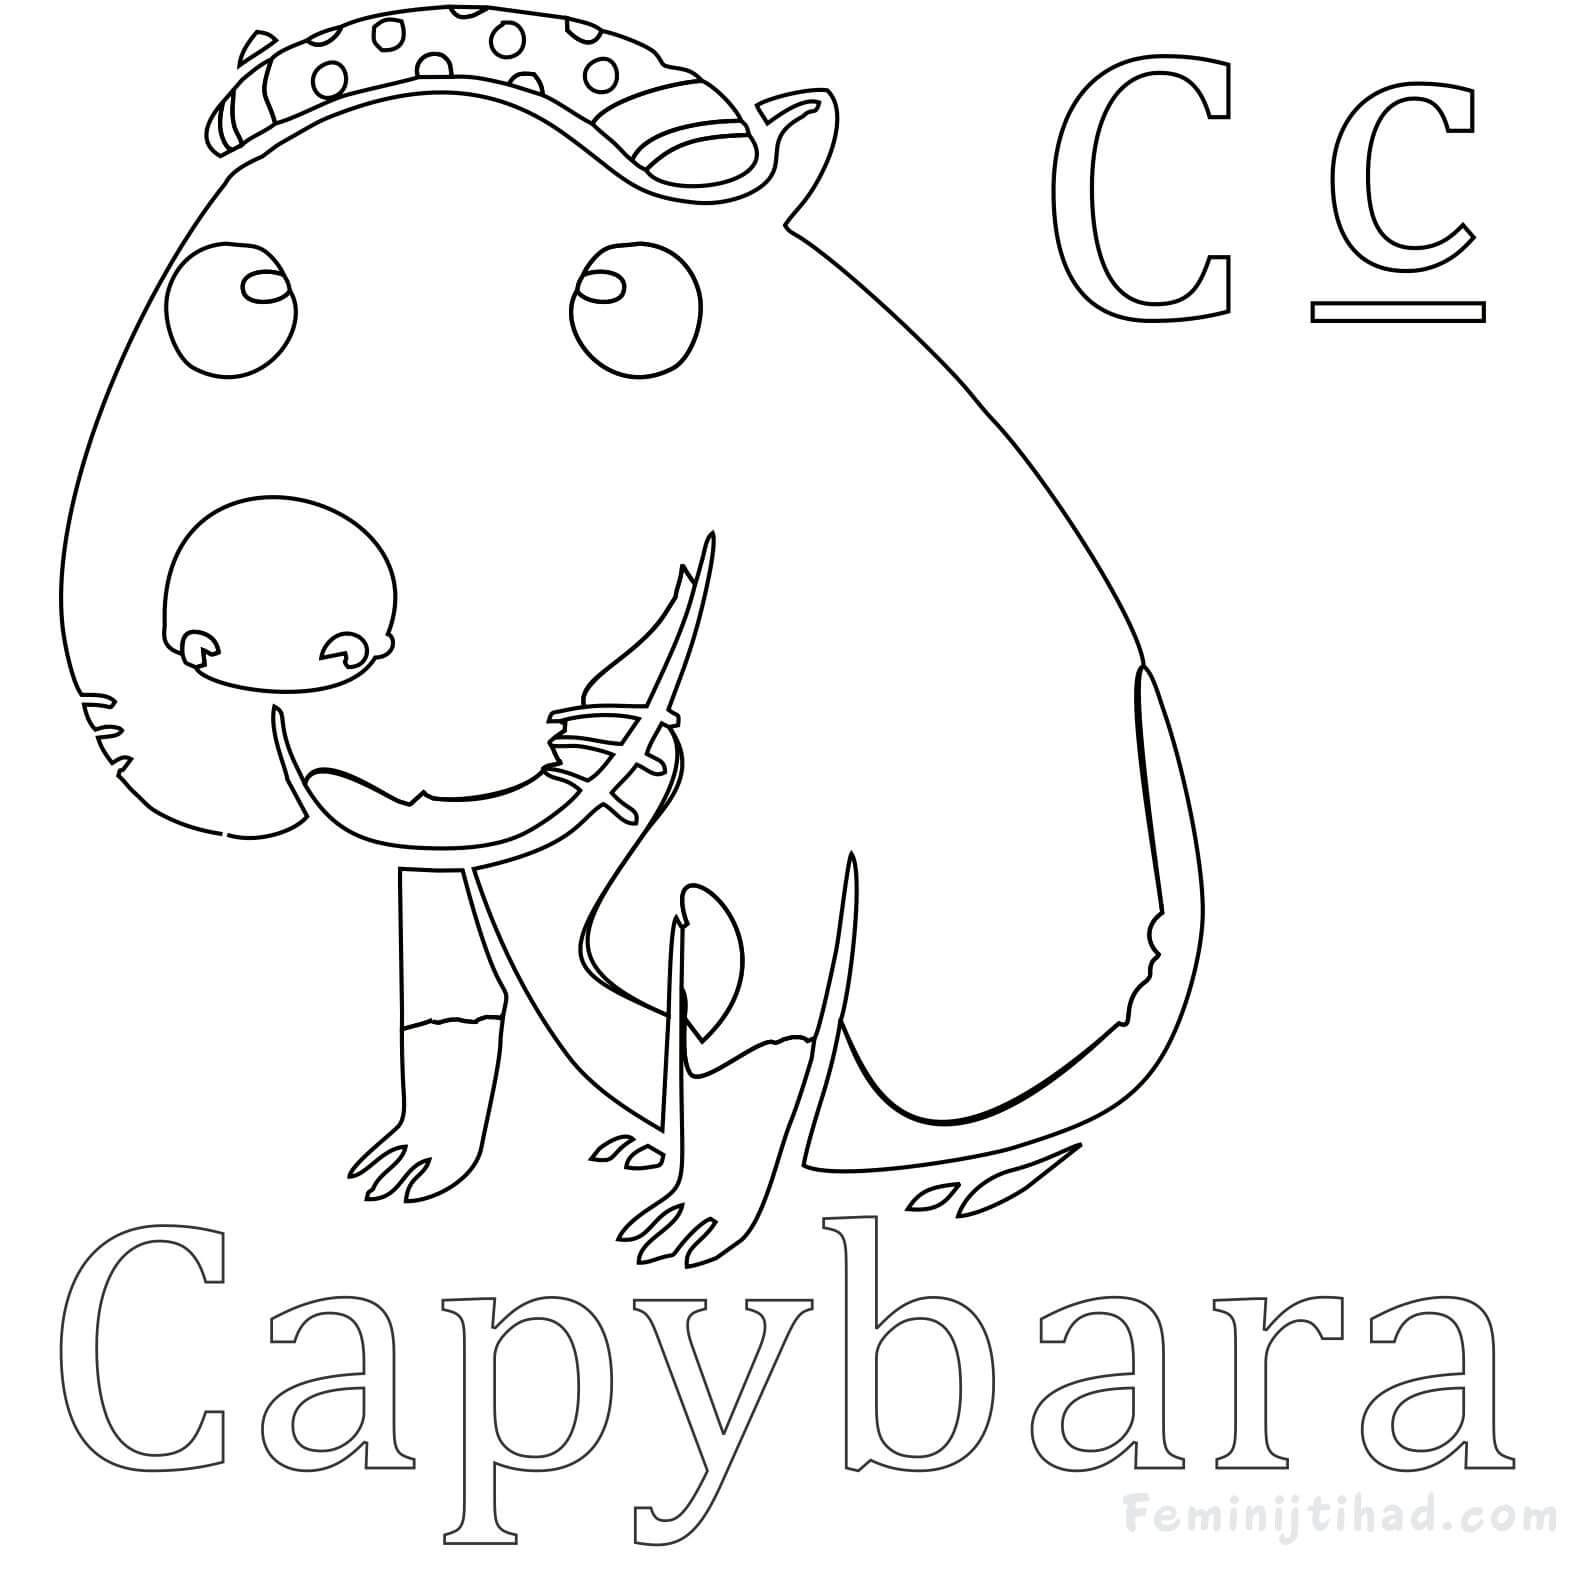 Easy Capybara Coloring Pages Free Coloring Sheets Coloring Pages Animal Coloring Pages Capybara